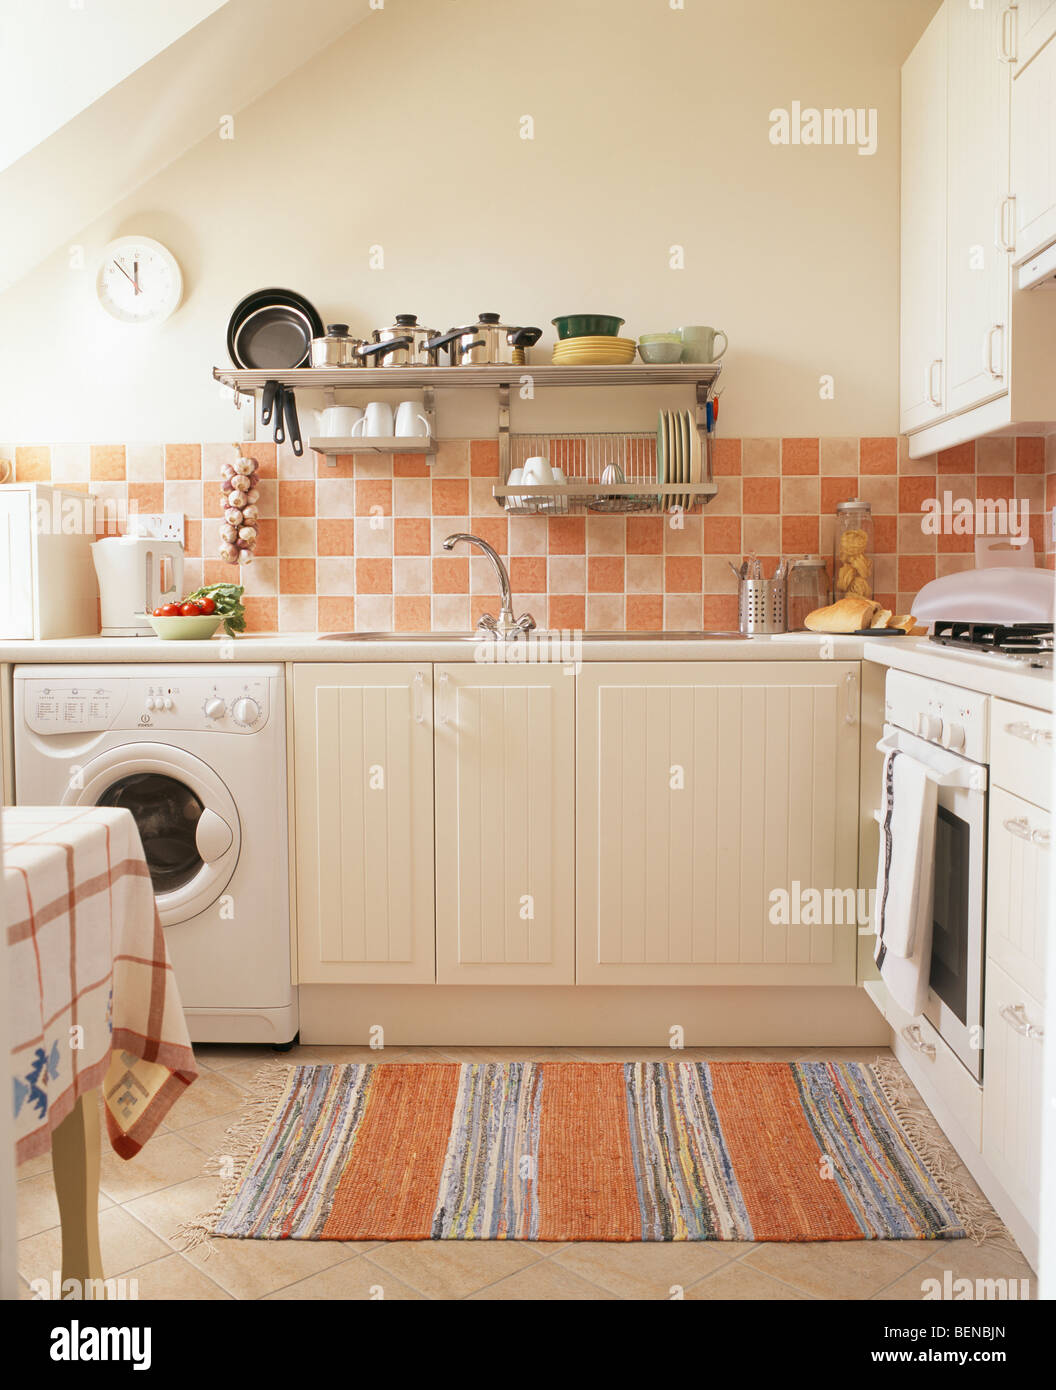 Washing Machine In Small Economy Style Attic Kitchen With Pink Rug And Wall Tiles